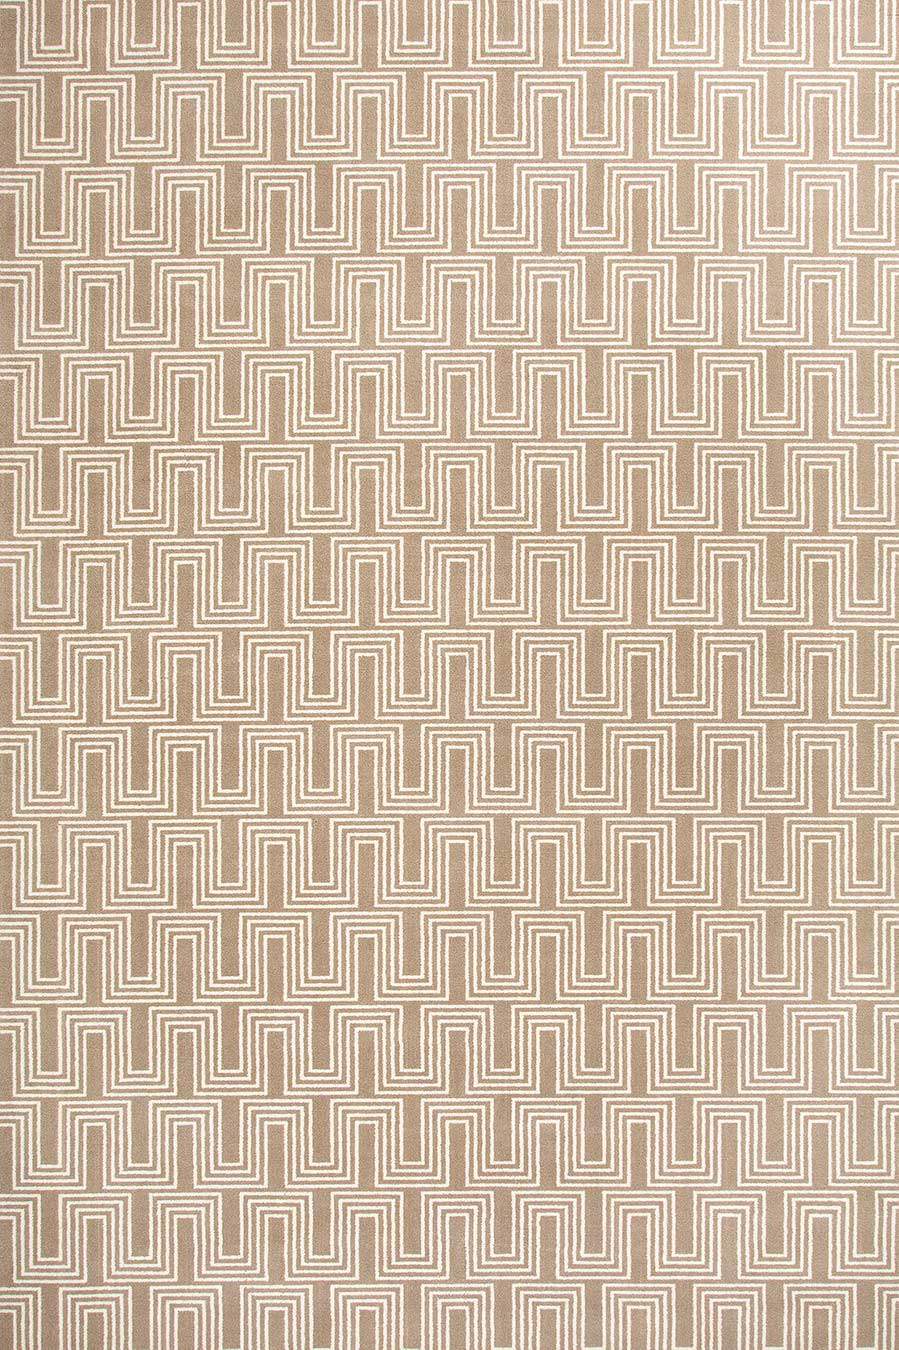 Overhead view of Yves beige patterned Axminster carpet by Greg Natale